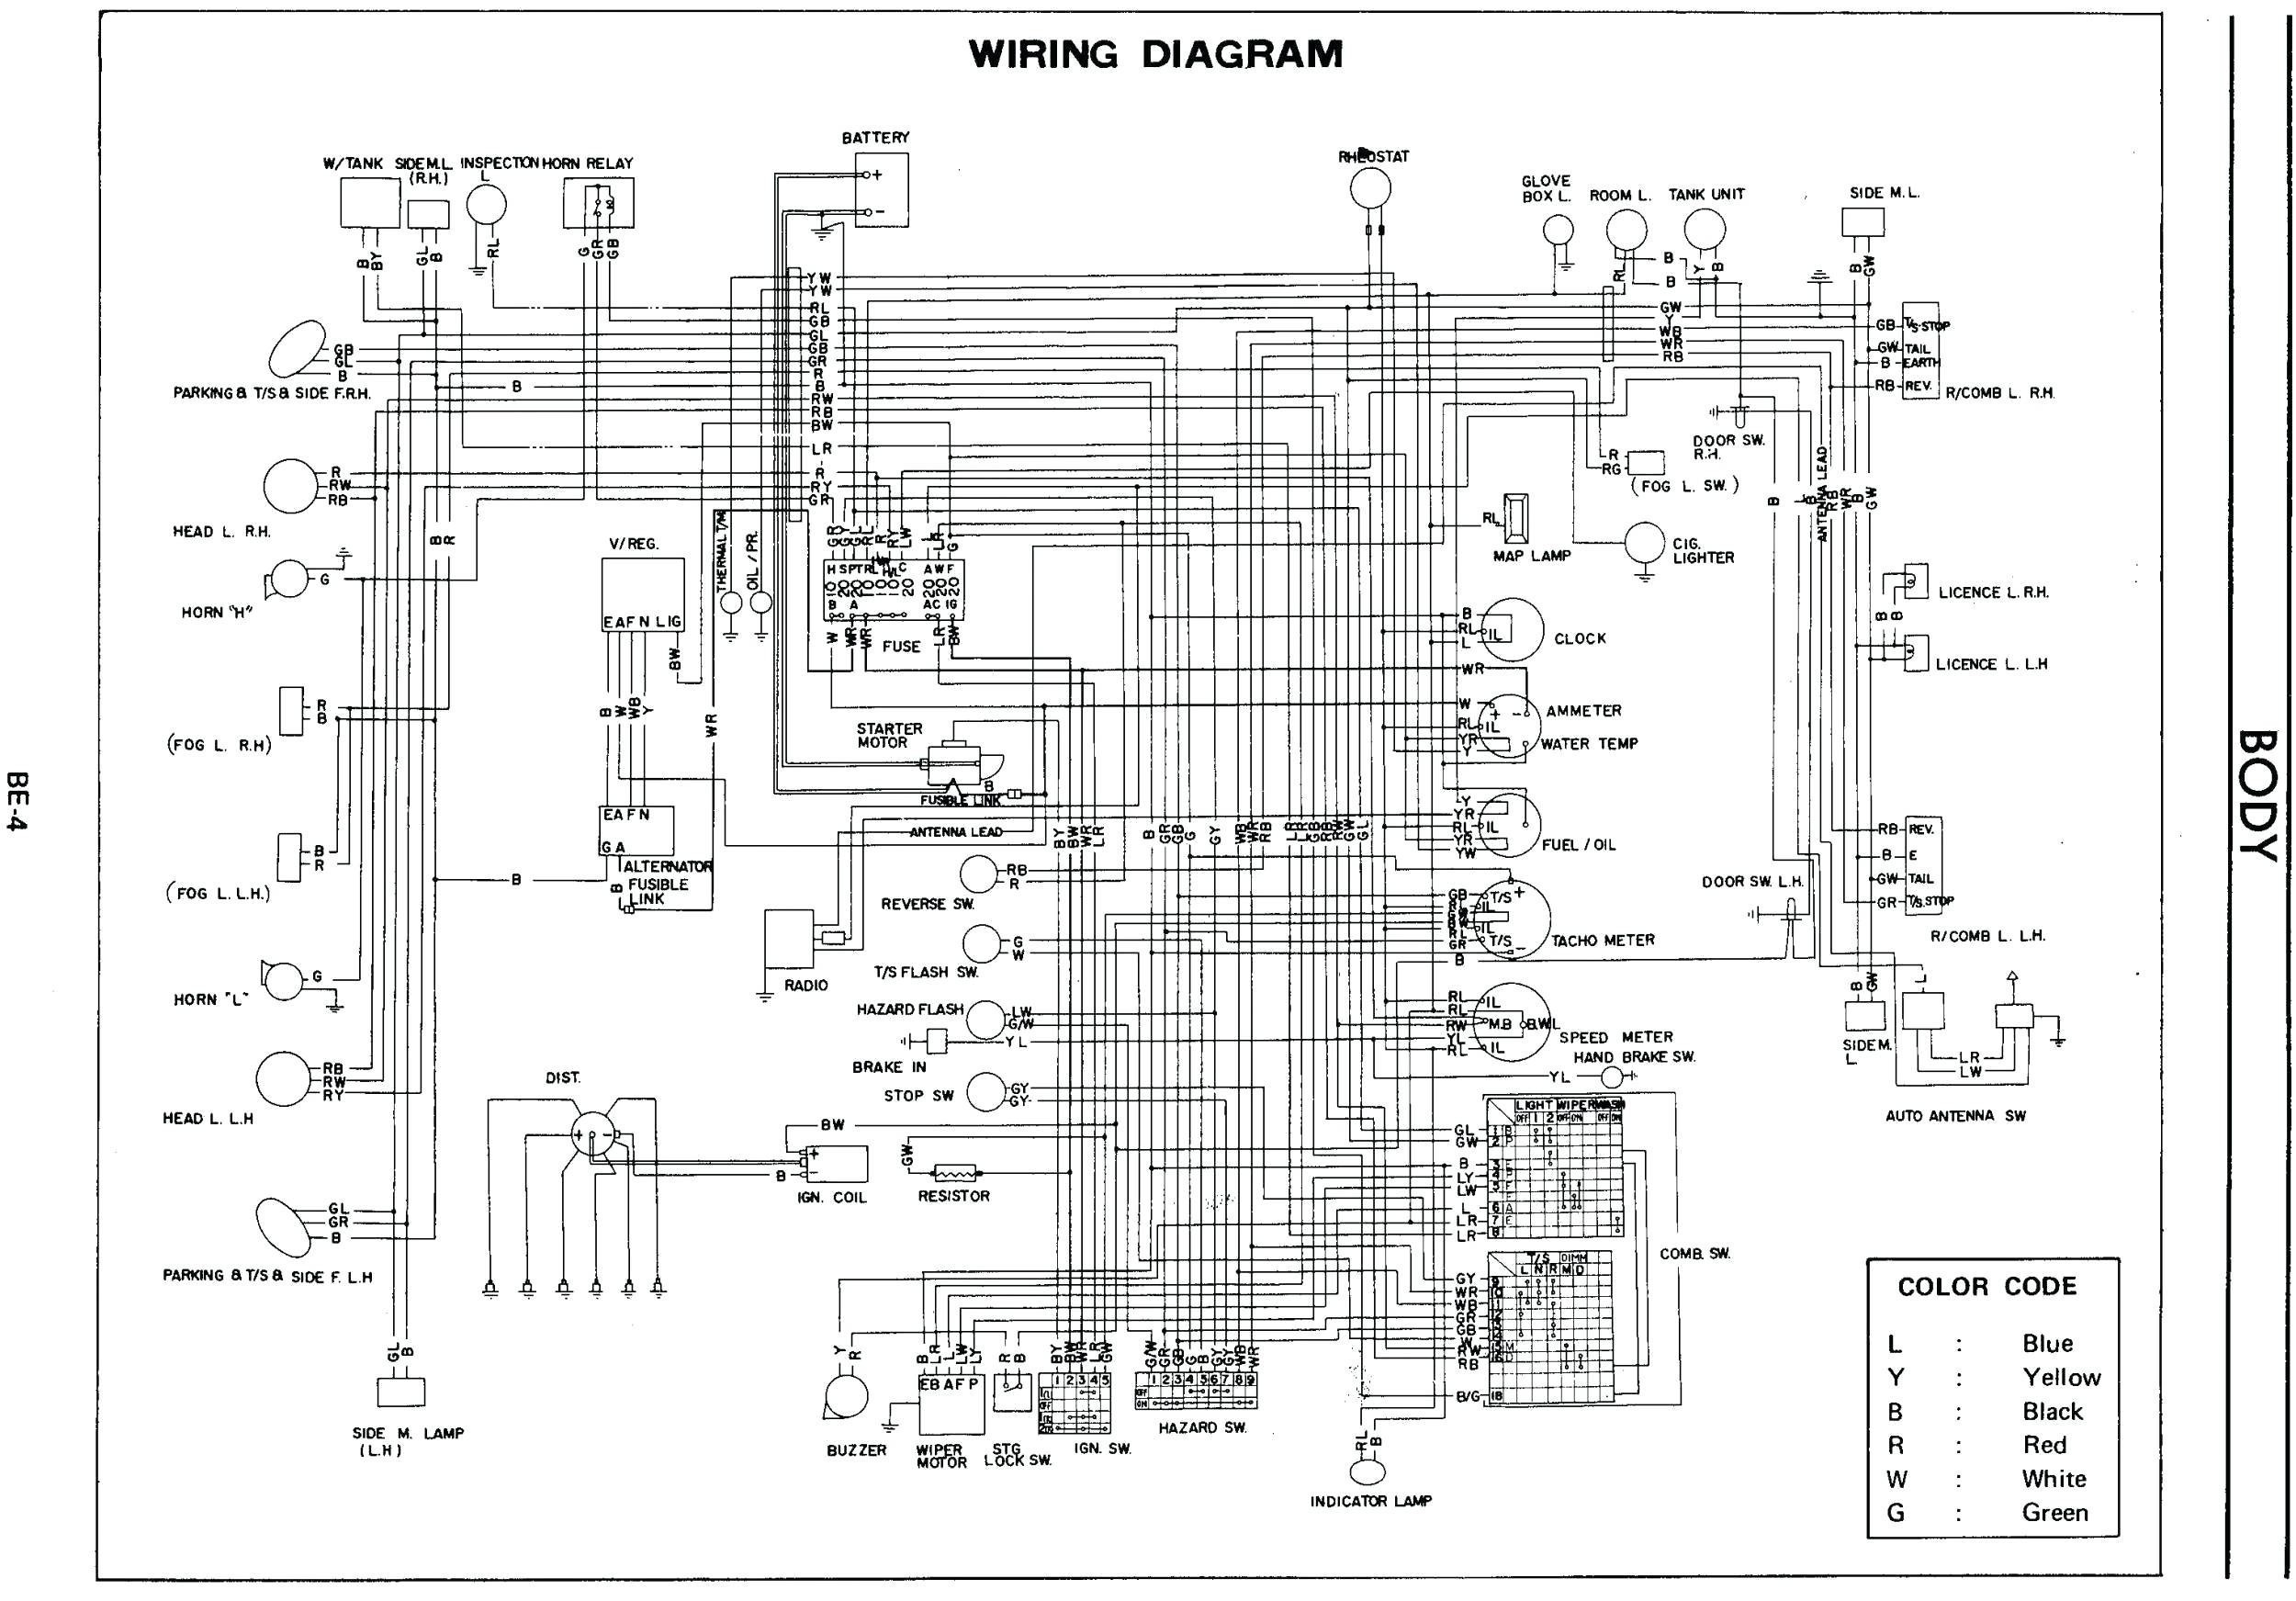 Datsun 240z Wiring Diagram Data Wiring Diagram bination Switch Wiring Diagram 73 240Z 1971 240z Wiring